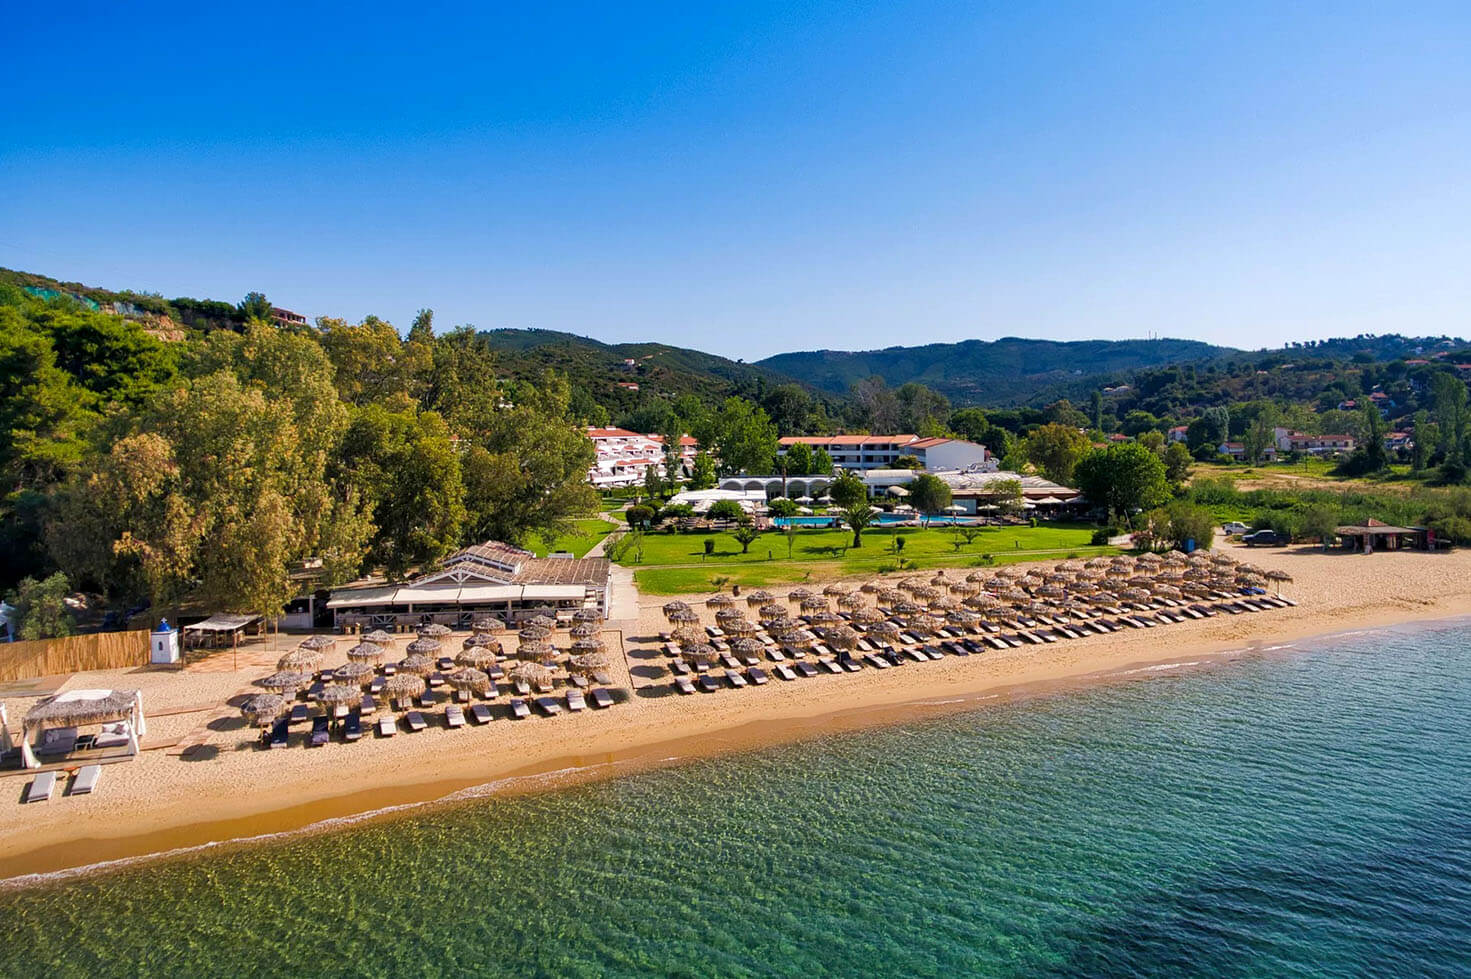 Hotels in Agia Paraskevi